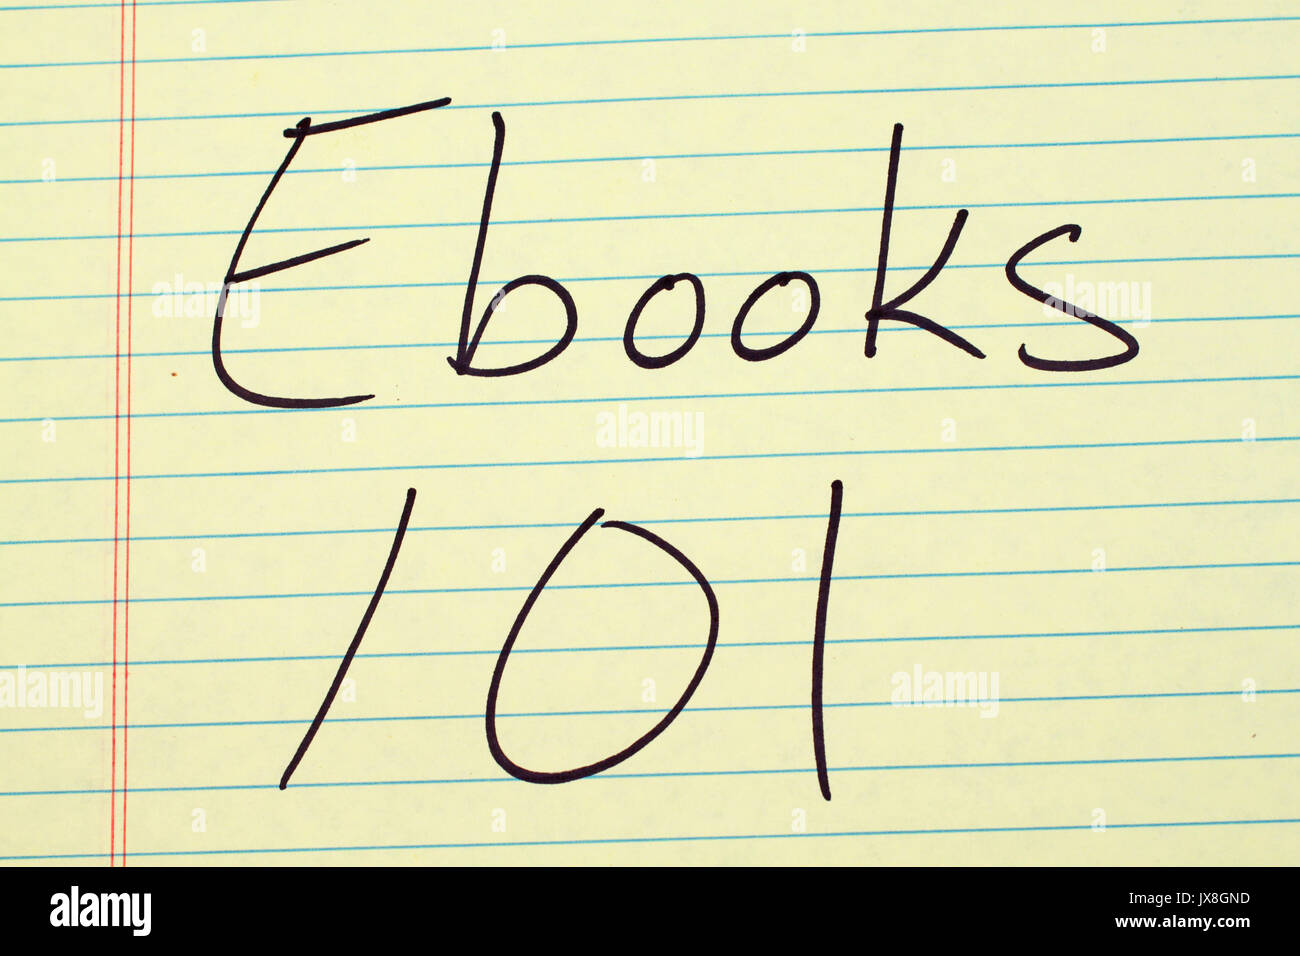 The words 'Ebooks 101' on a yellow legal pad - Stock Image